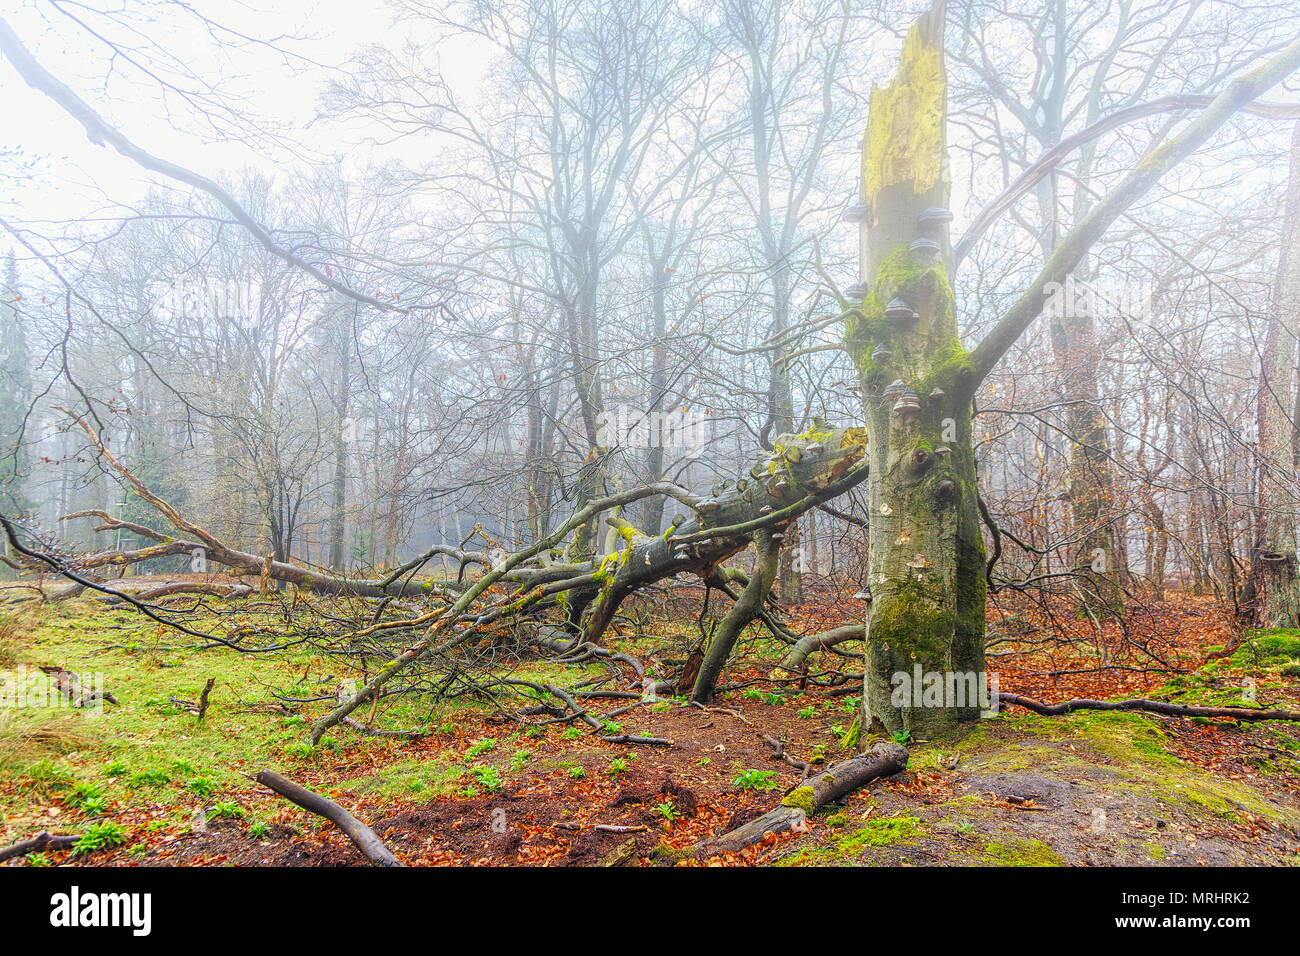 Dead beech tree Fagus sylvatica fomes Fomentarius, under covered with mushrooms in a wooded area in a water vapor become foggy forest - Stock Image